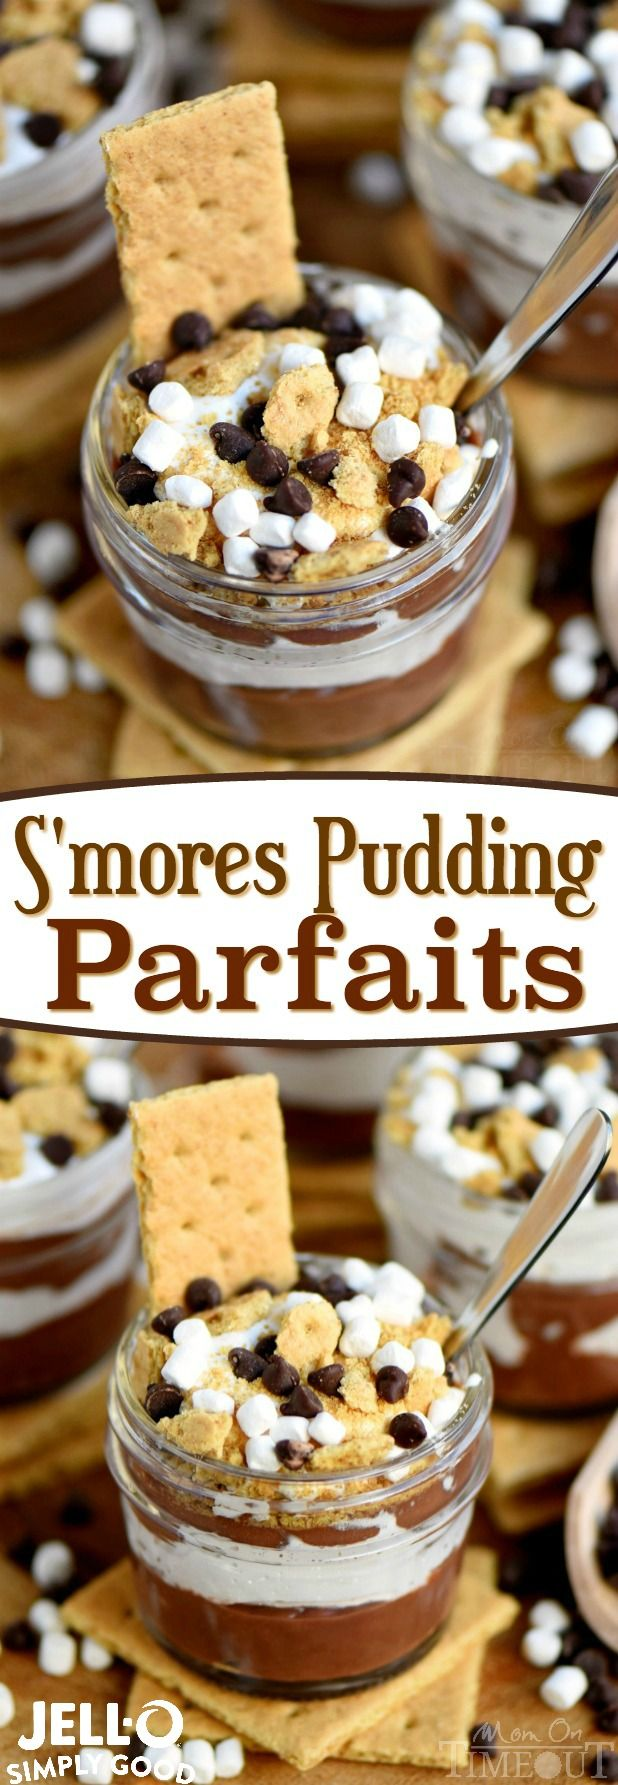 Welcome to your new favorite treat! These S'mores Pudding Parfaits are the perfect easy dessert made with new JELL-O SIMPLY GOOD pudding mix! Simple, sweet goodness that is impossible to resist! // Mom On Timeout #ad